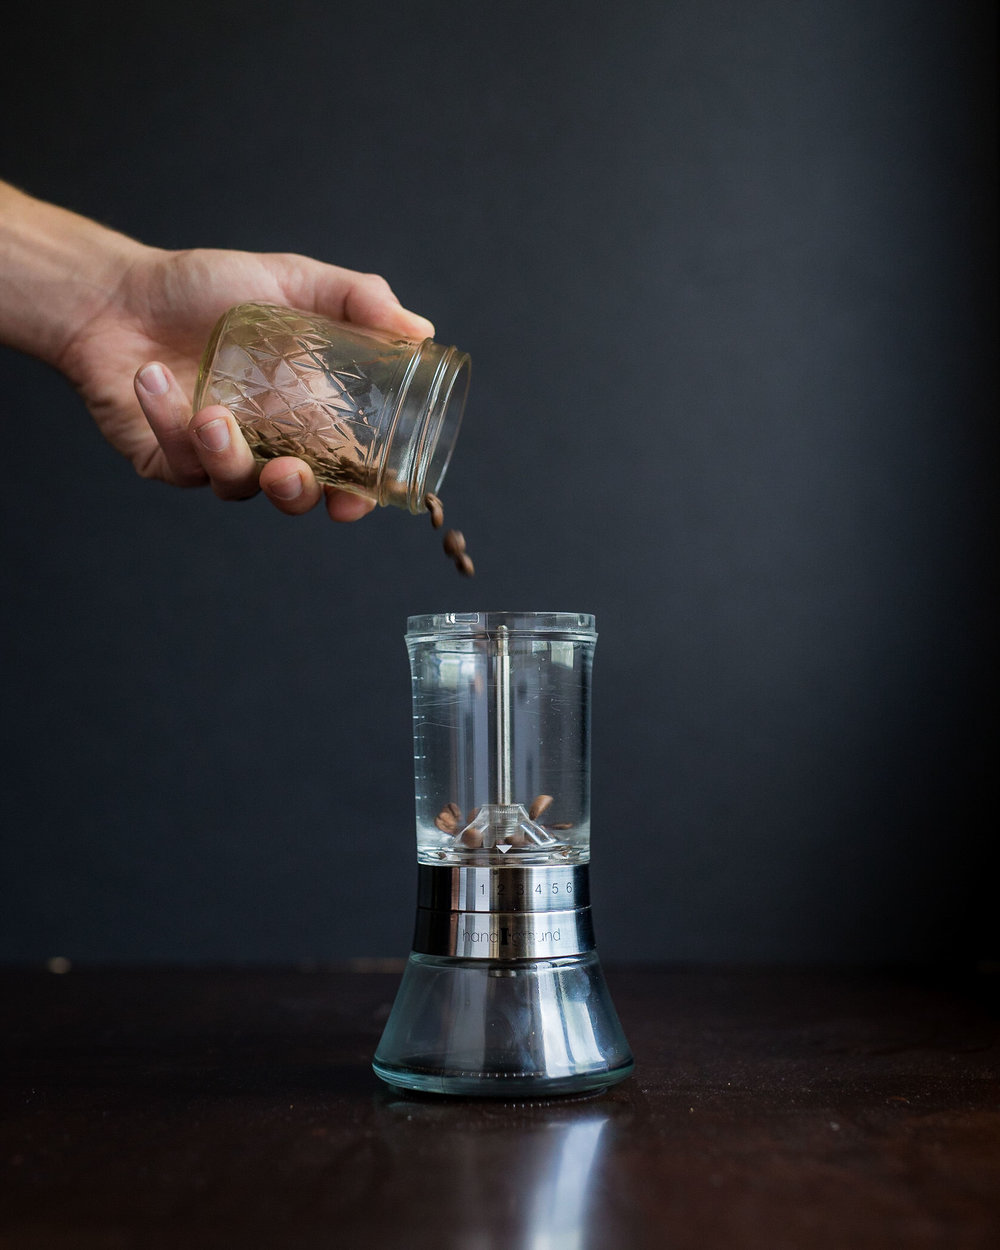 HandsomeWade-Aeropress-Brew-Guide-3.jpg